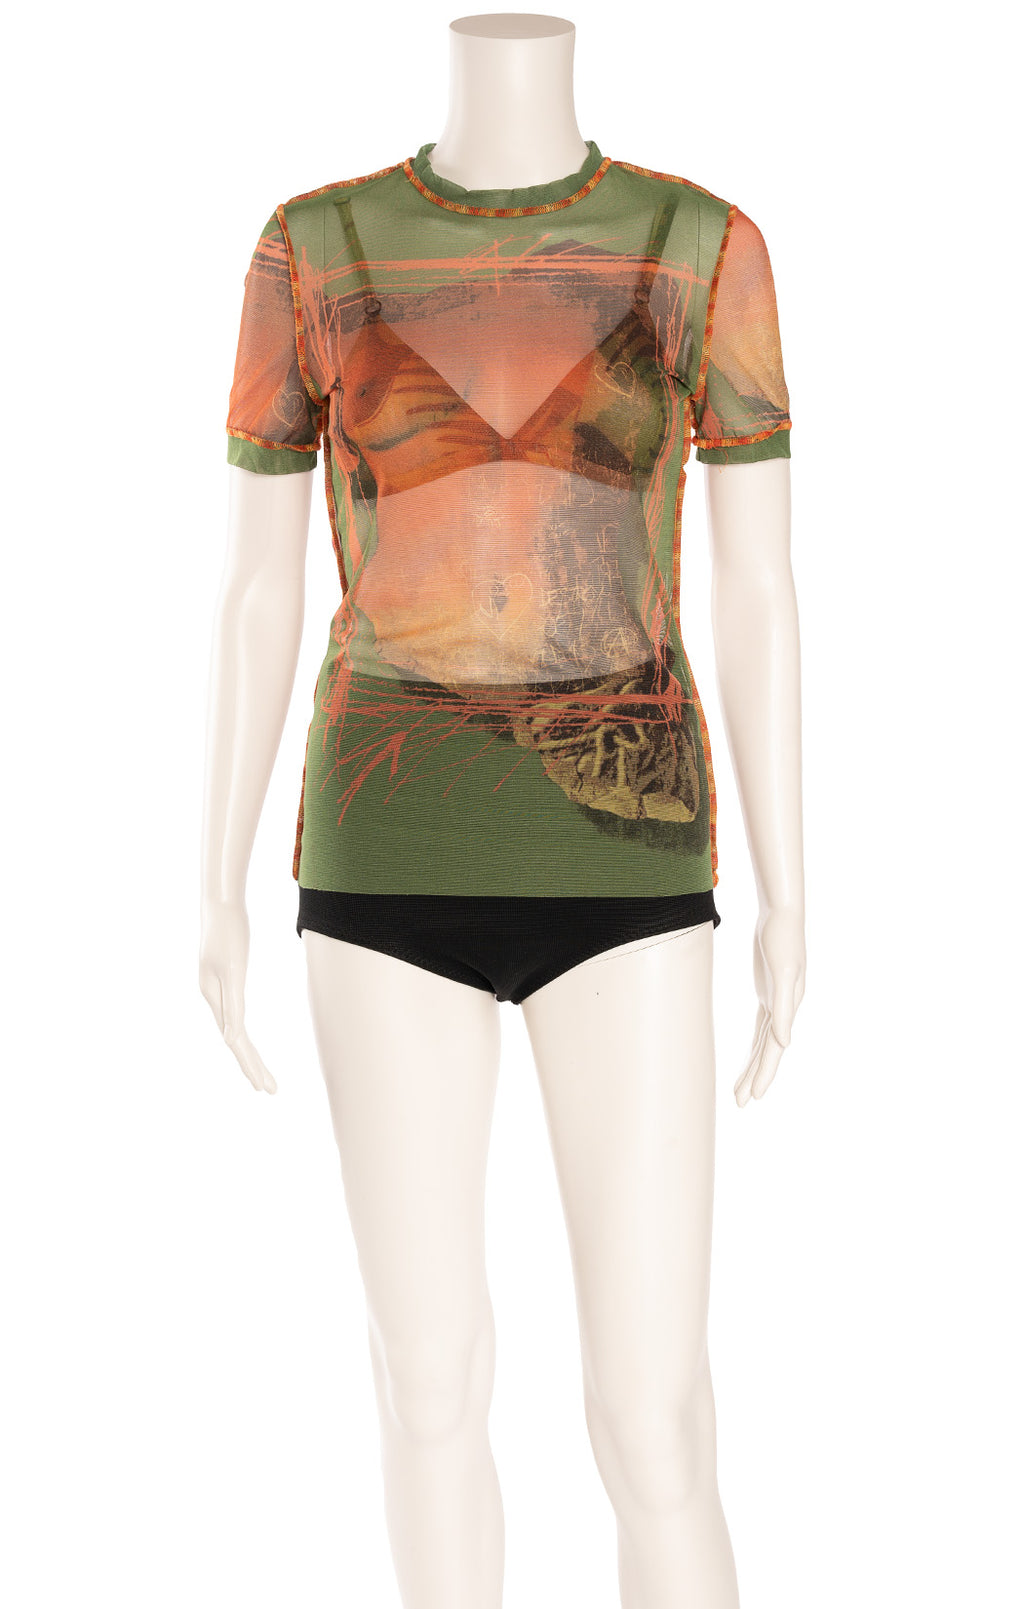 Brown and green multi colored print design sheer like top with matching bra